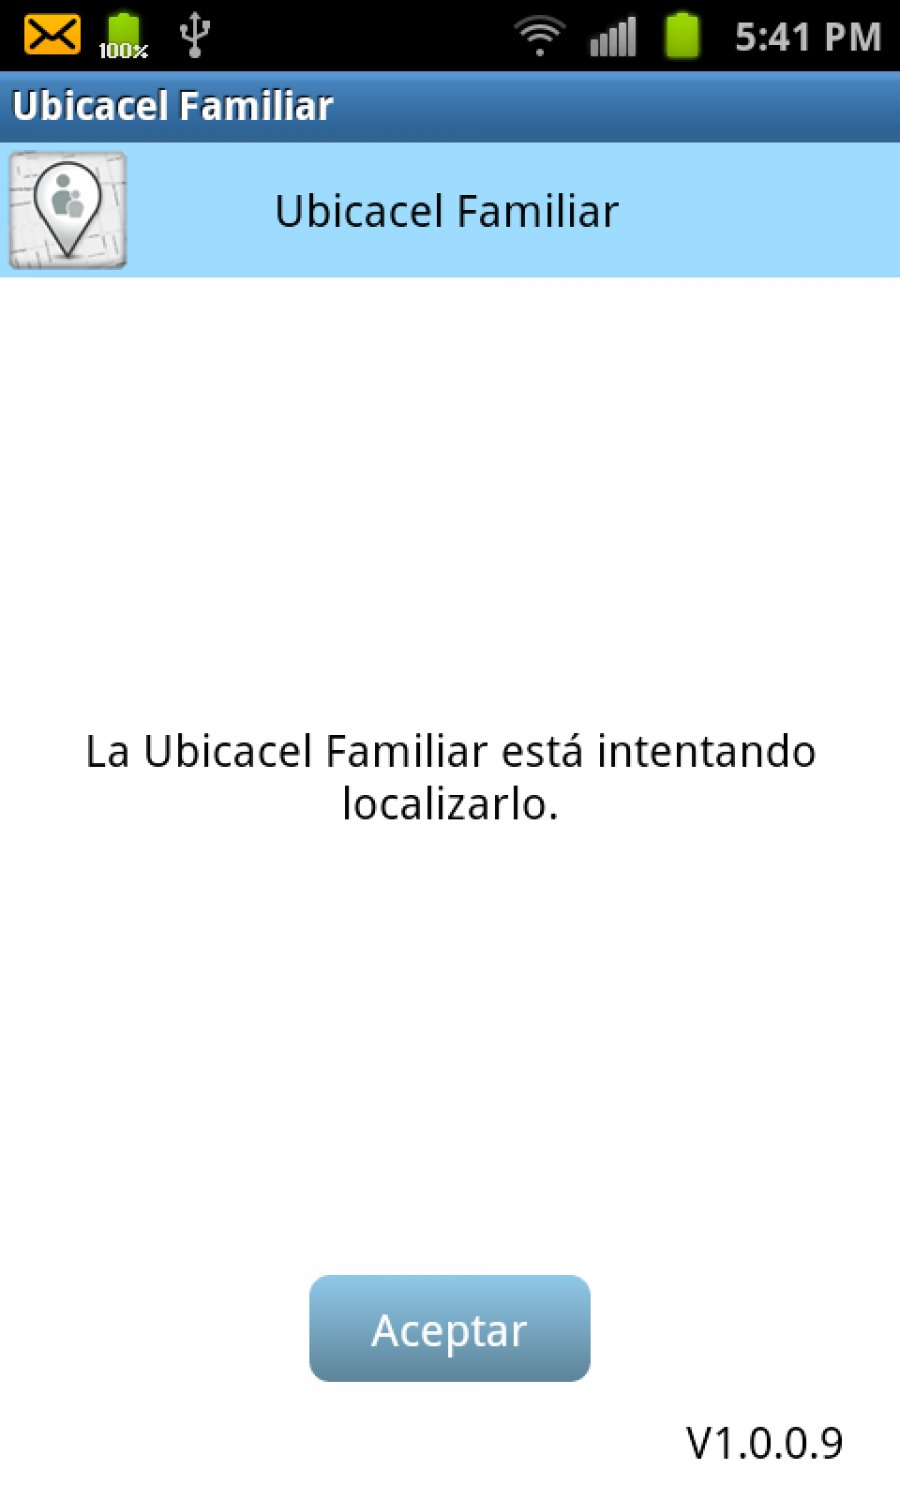 Ubicacel Familiar